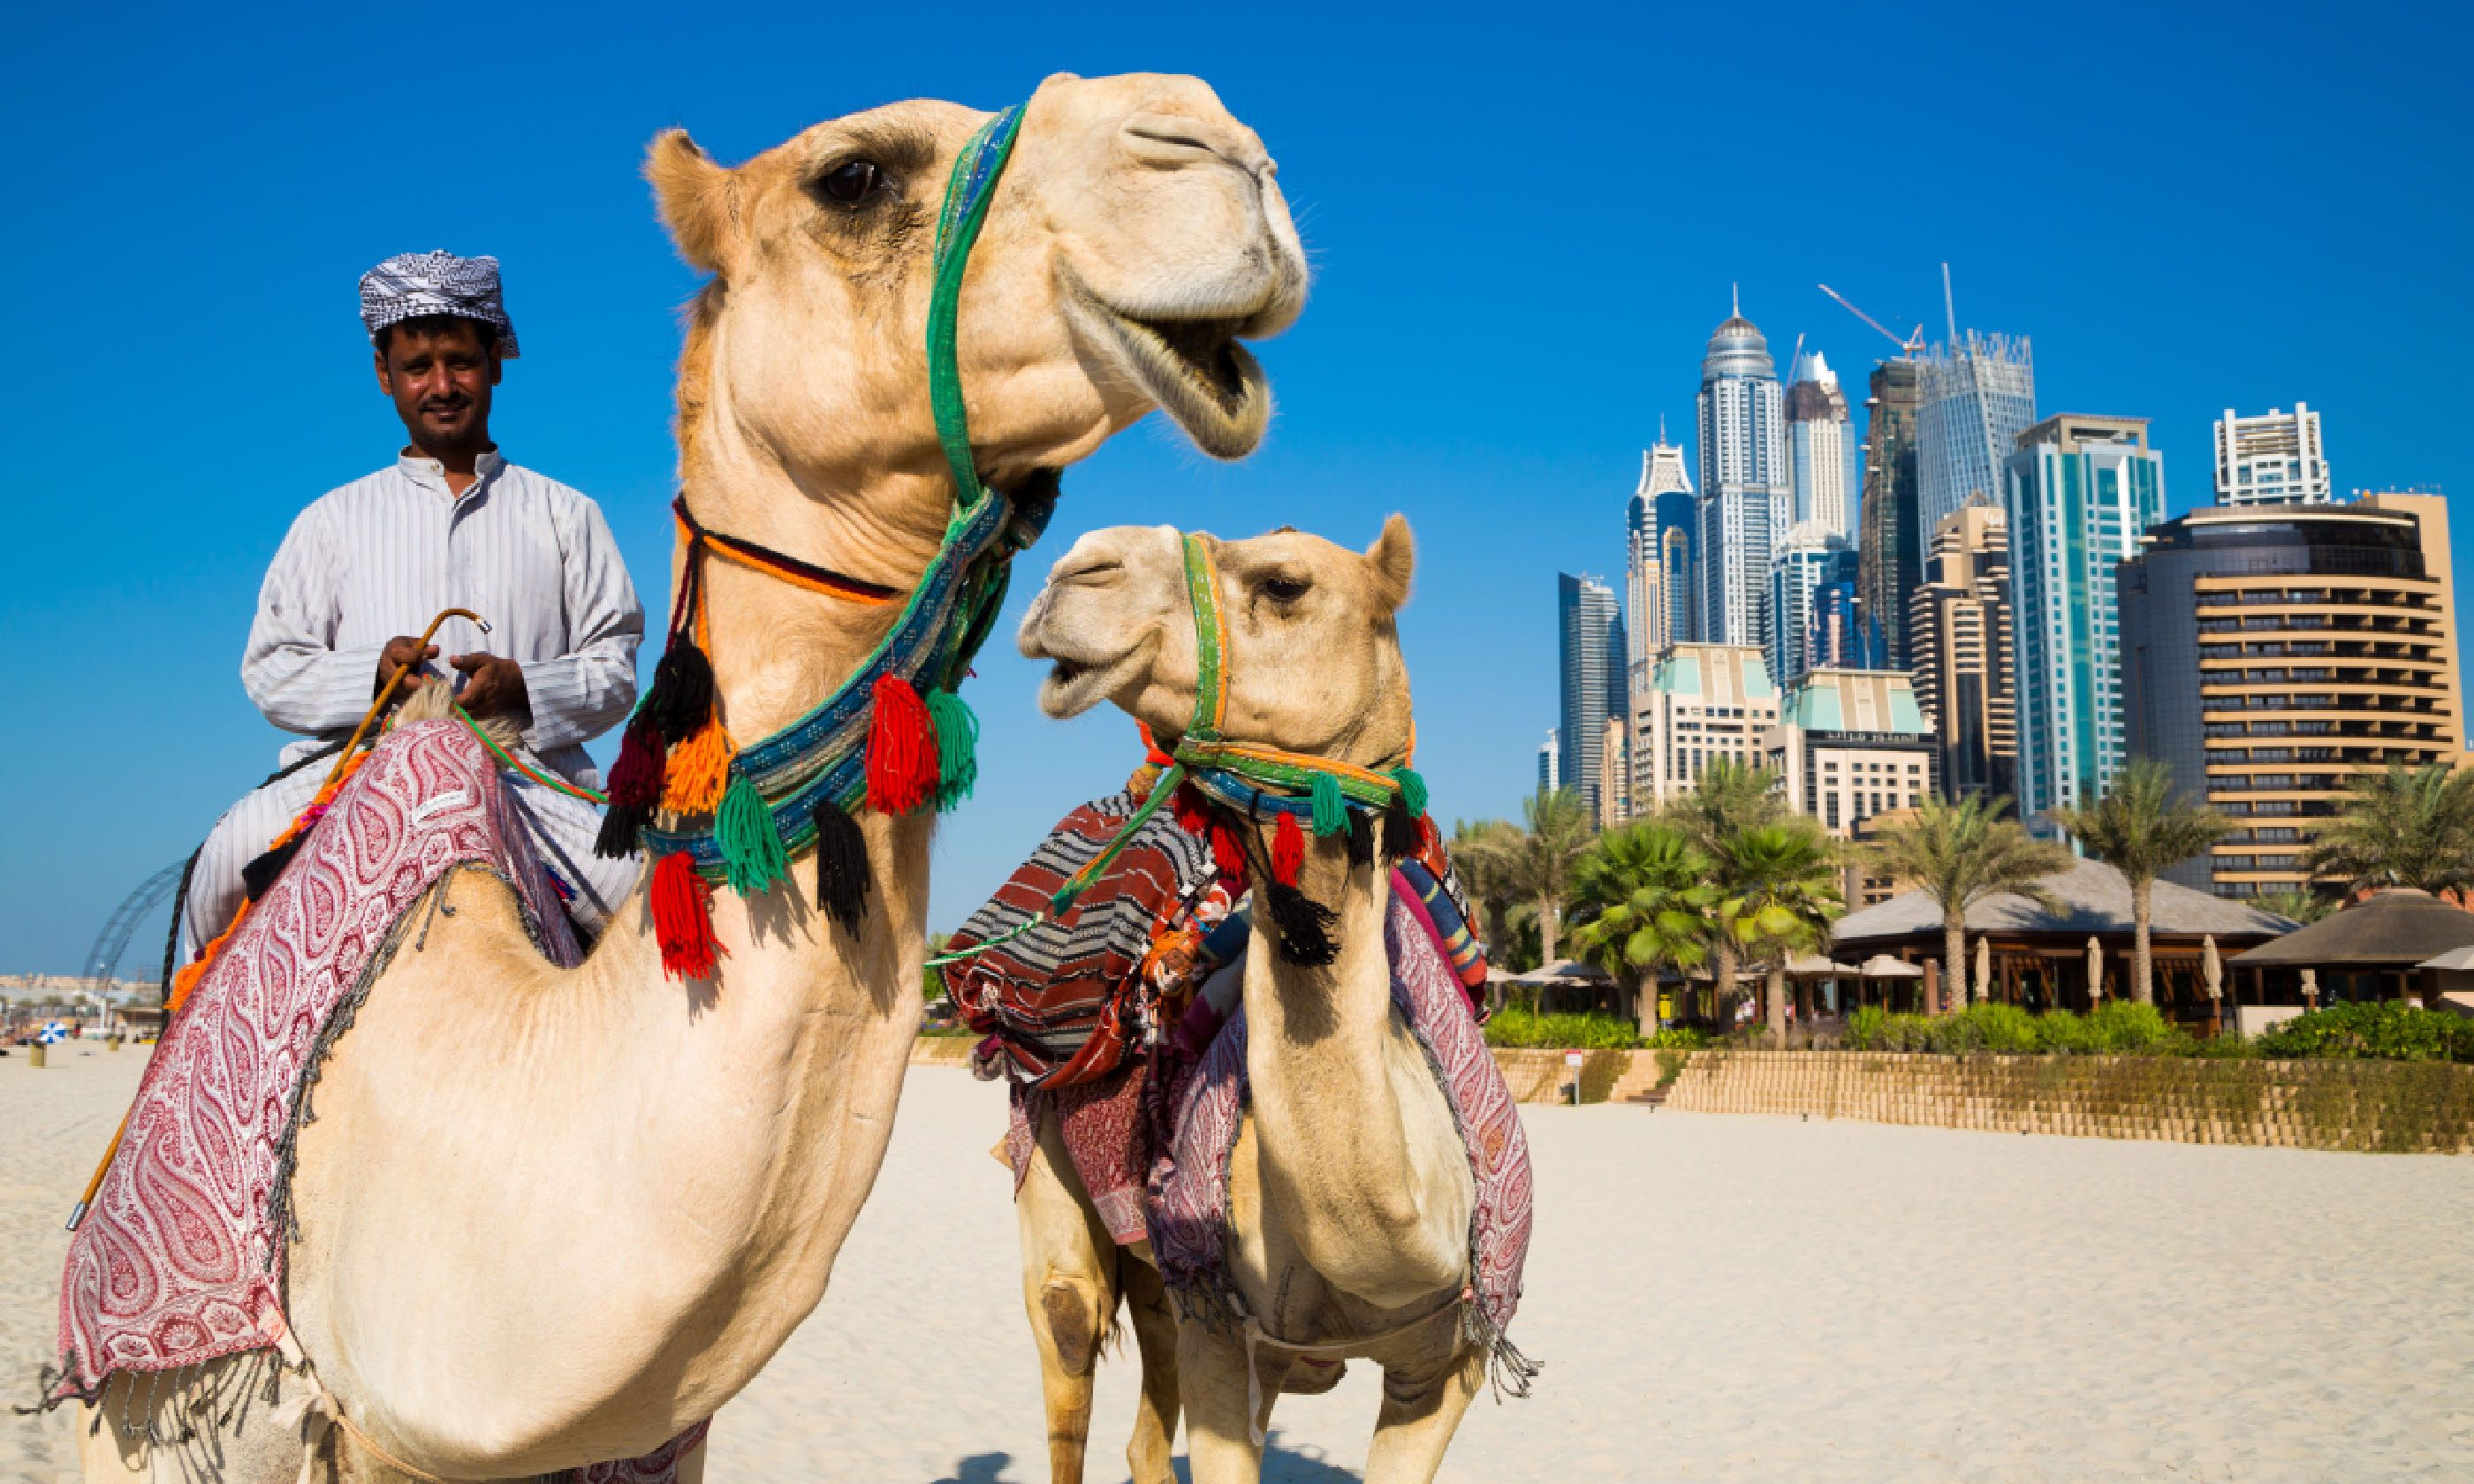 Camels on JBR beach, near Dubai Marina (Shutterstock)